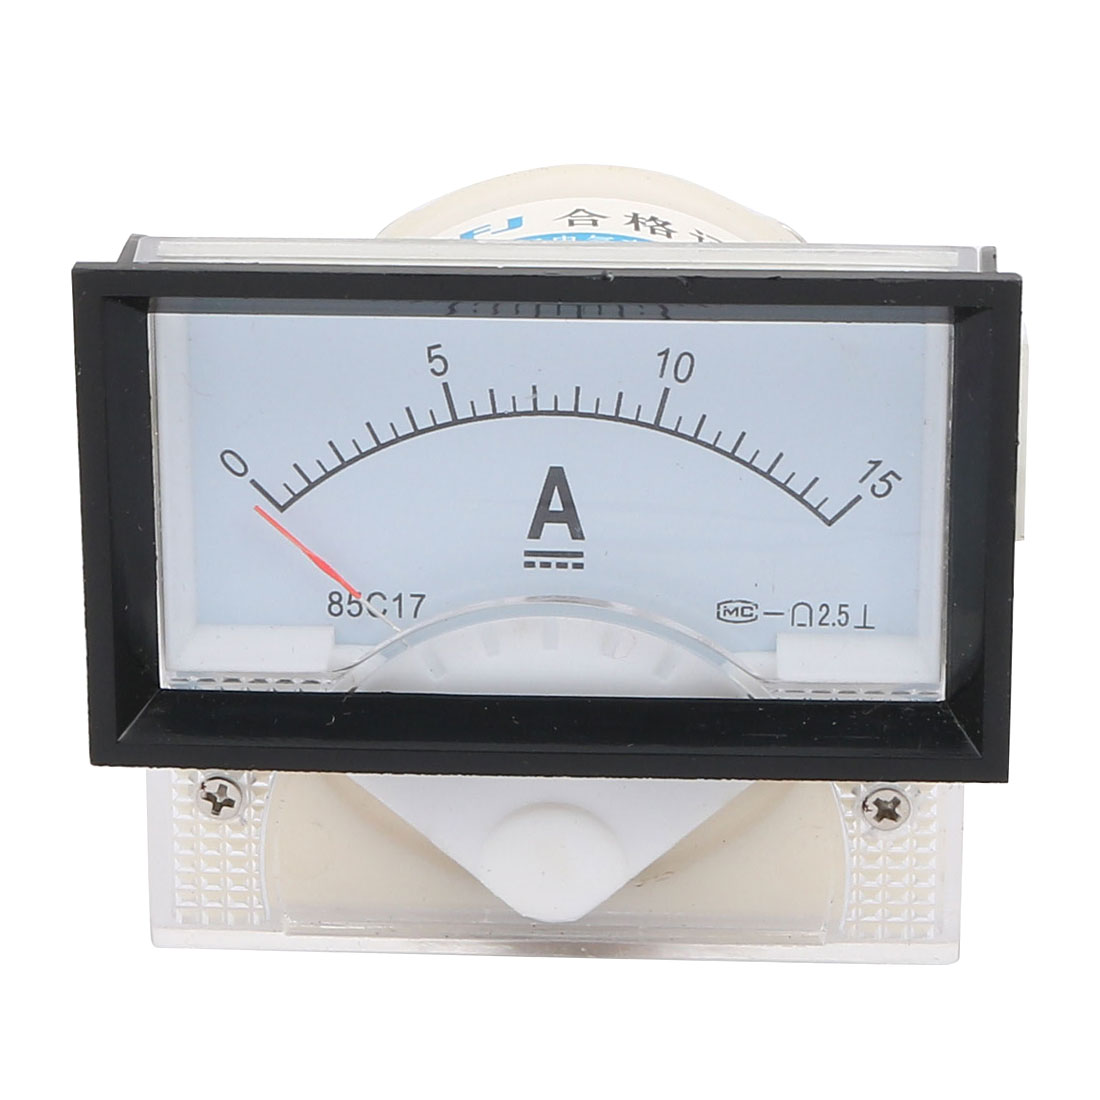 0-15A Analog DC Current Panel Meter Amperemeter 85C17-15A